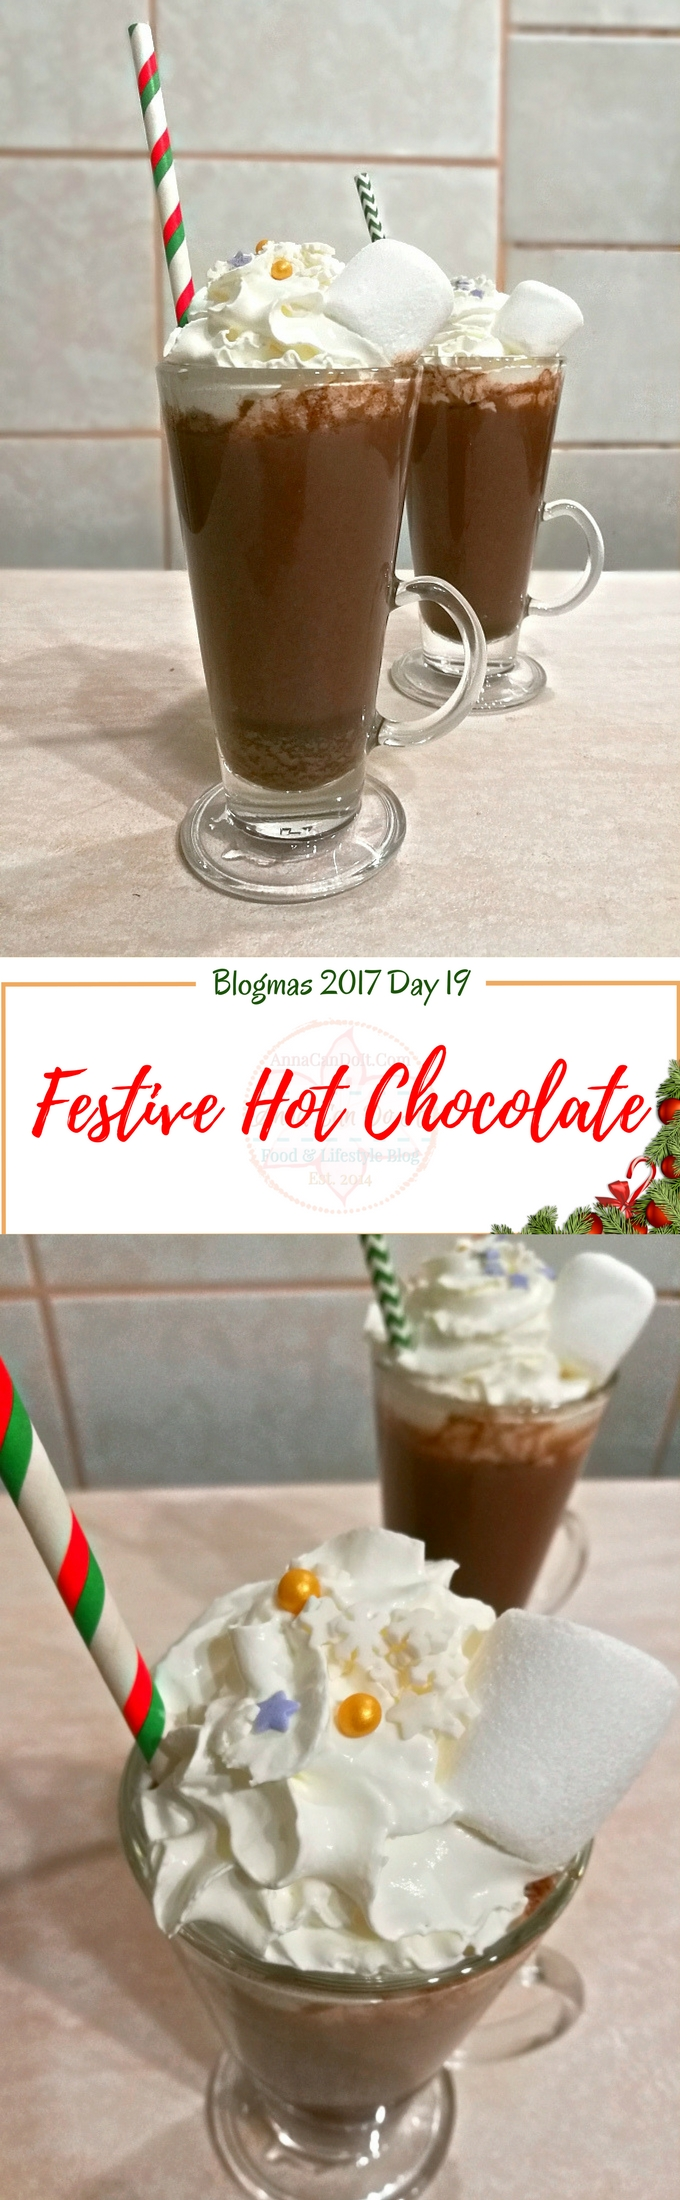 Festive Hot Chocolate - Blogmas 2017 Day 19 - Anna Can Do It!